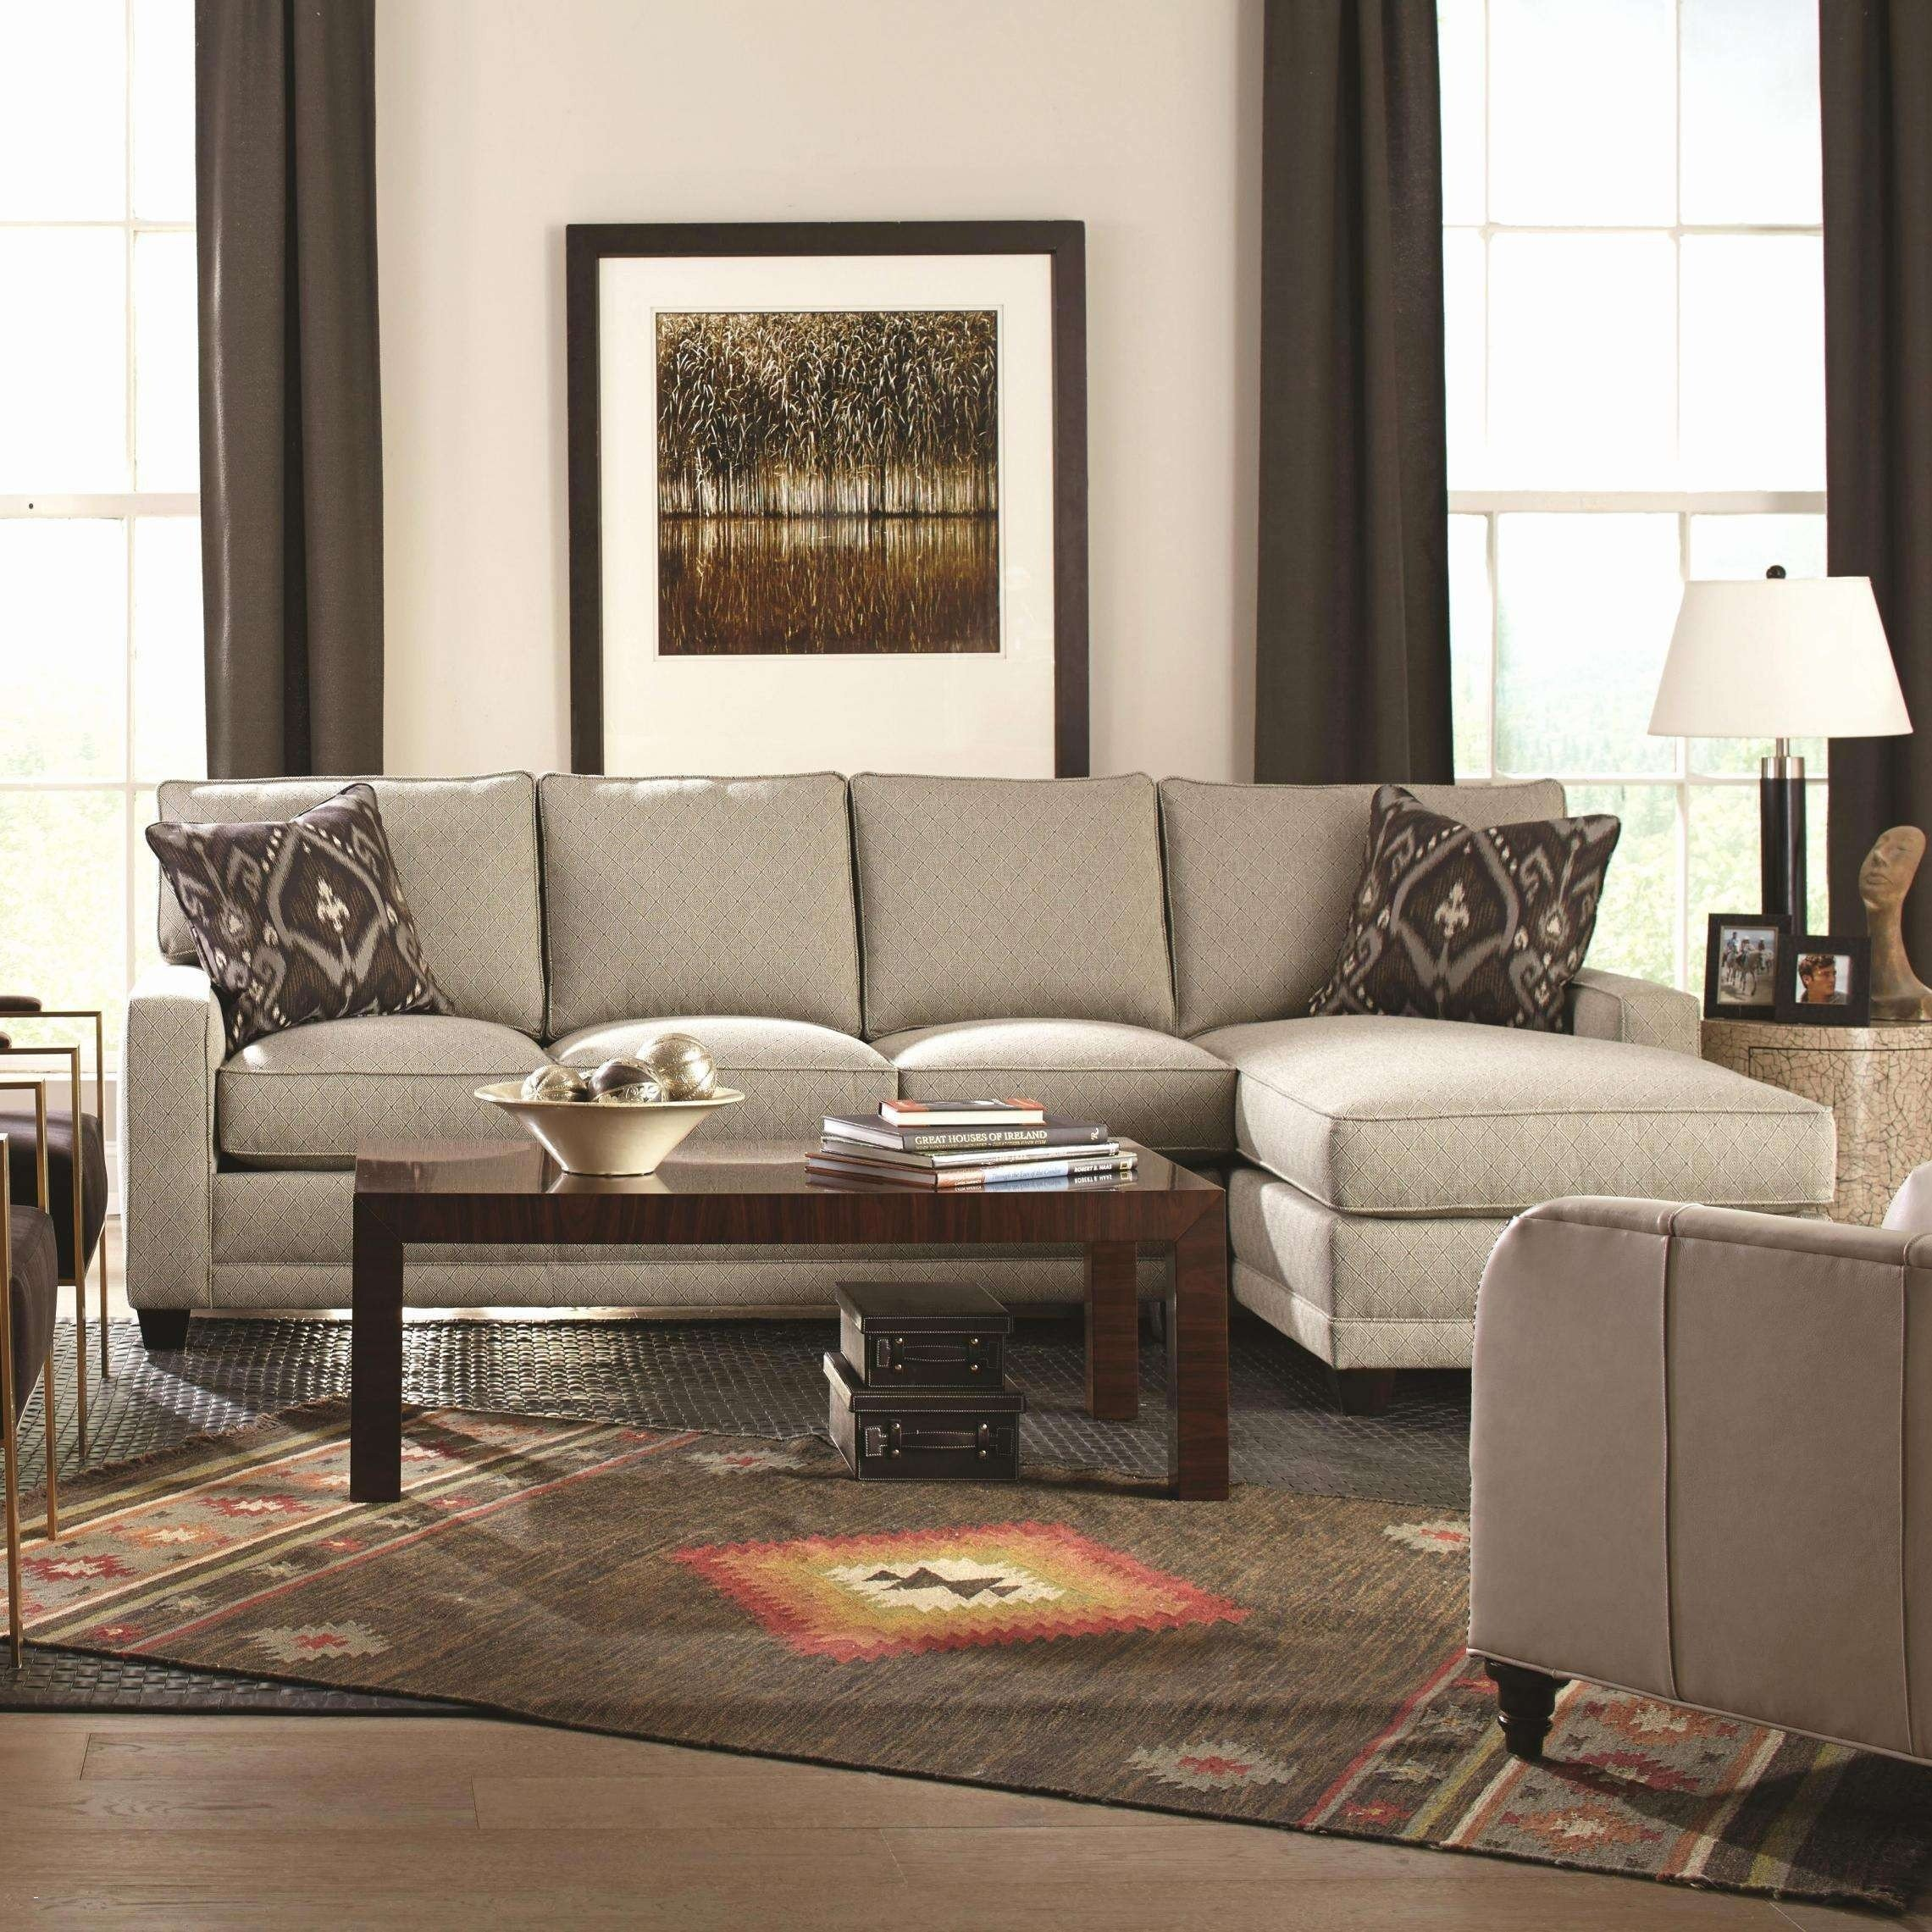 Comfortable Small Living Room 21 Unique fortable sofa for Small Living Room